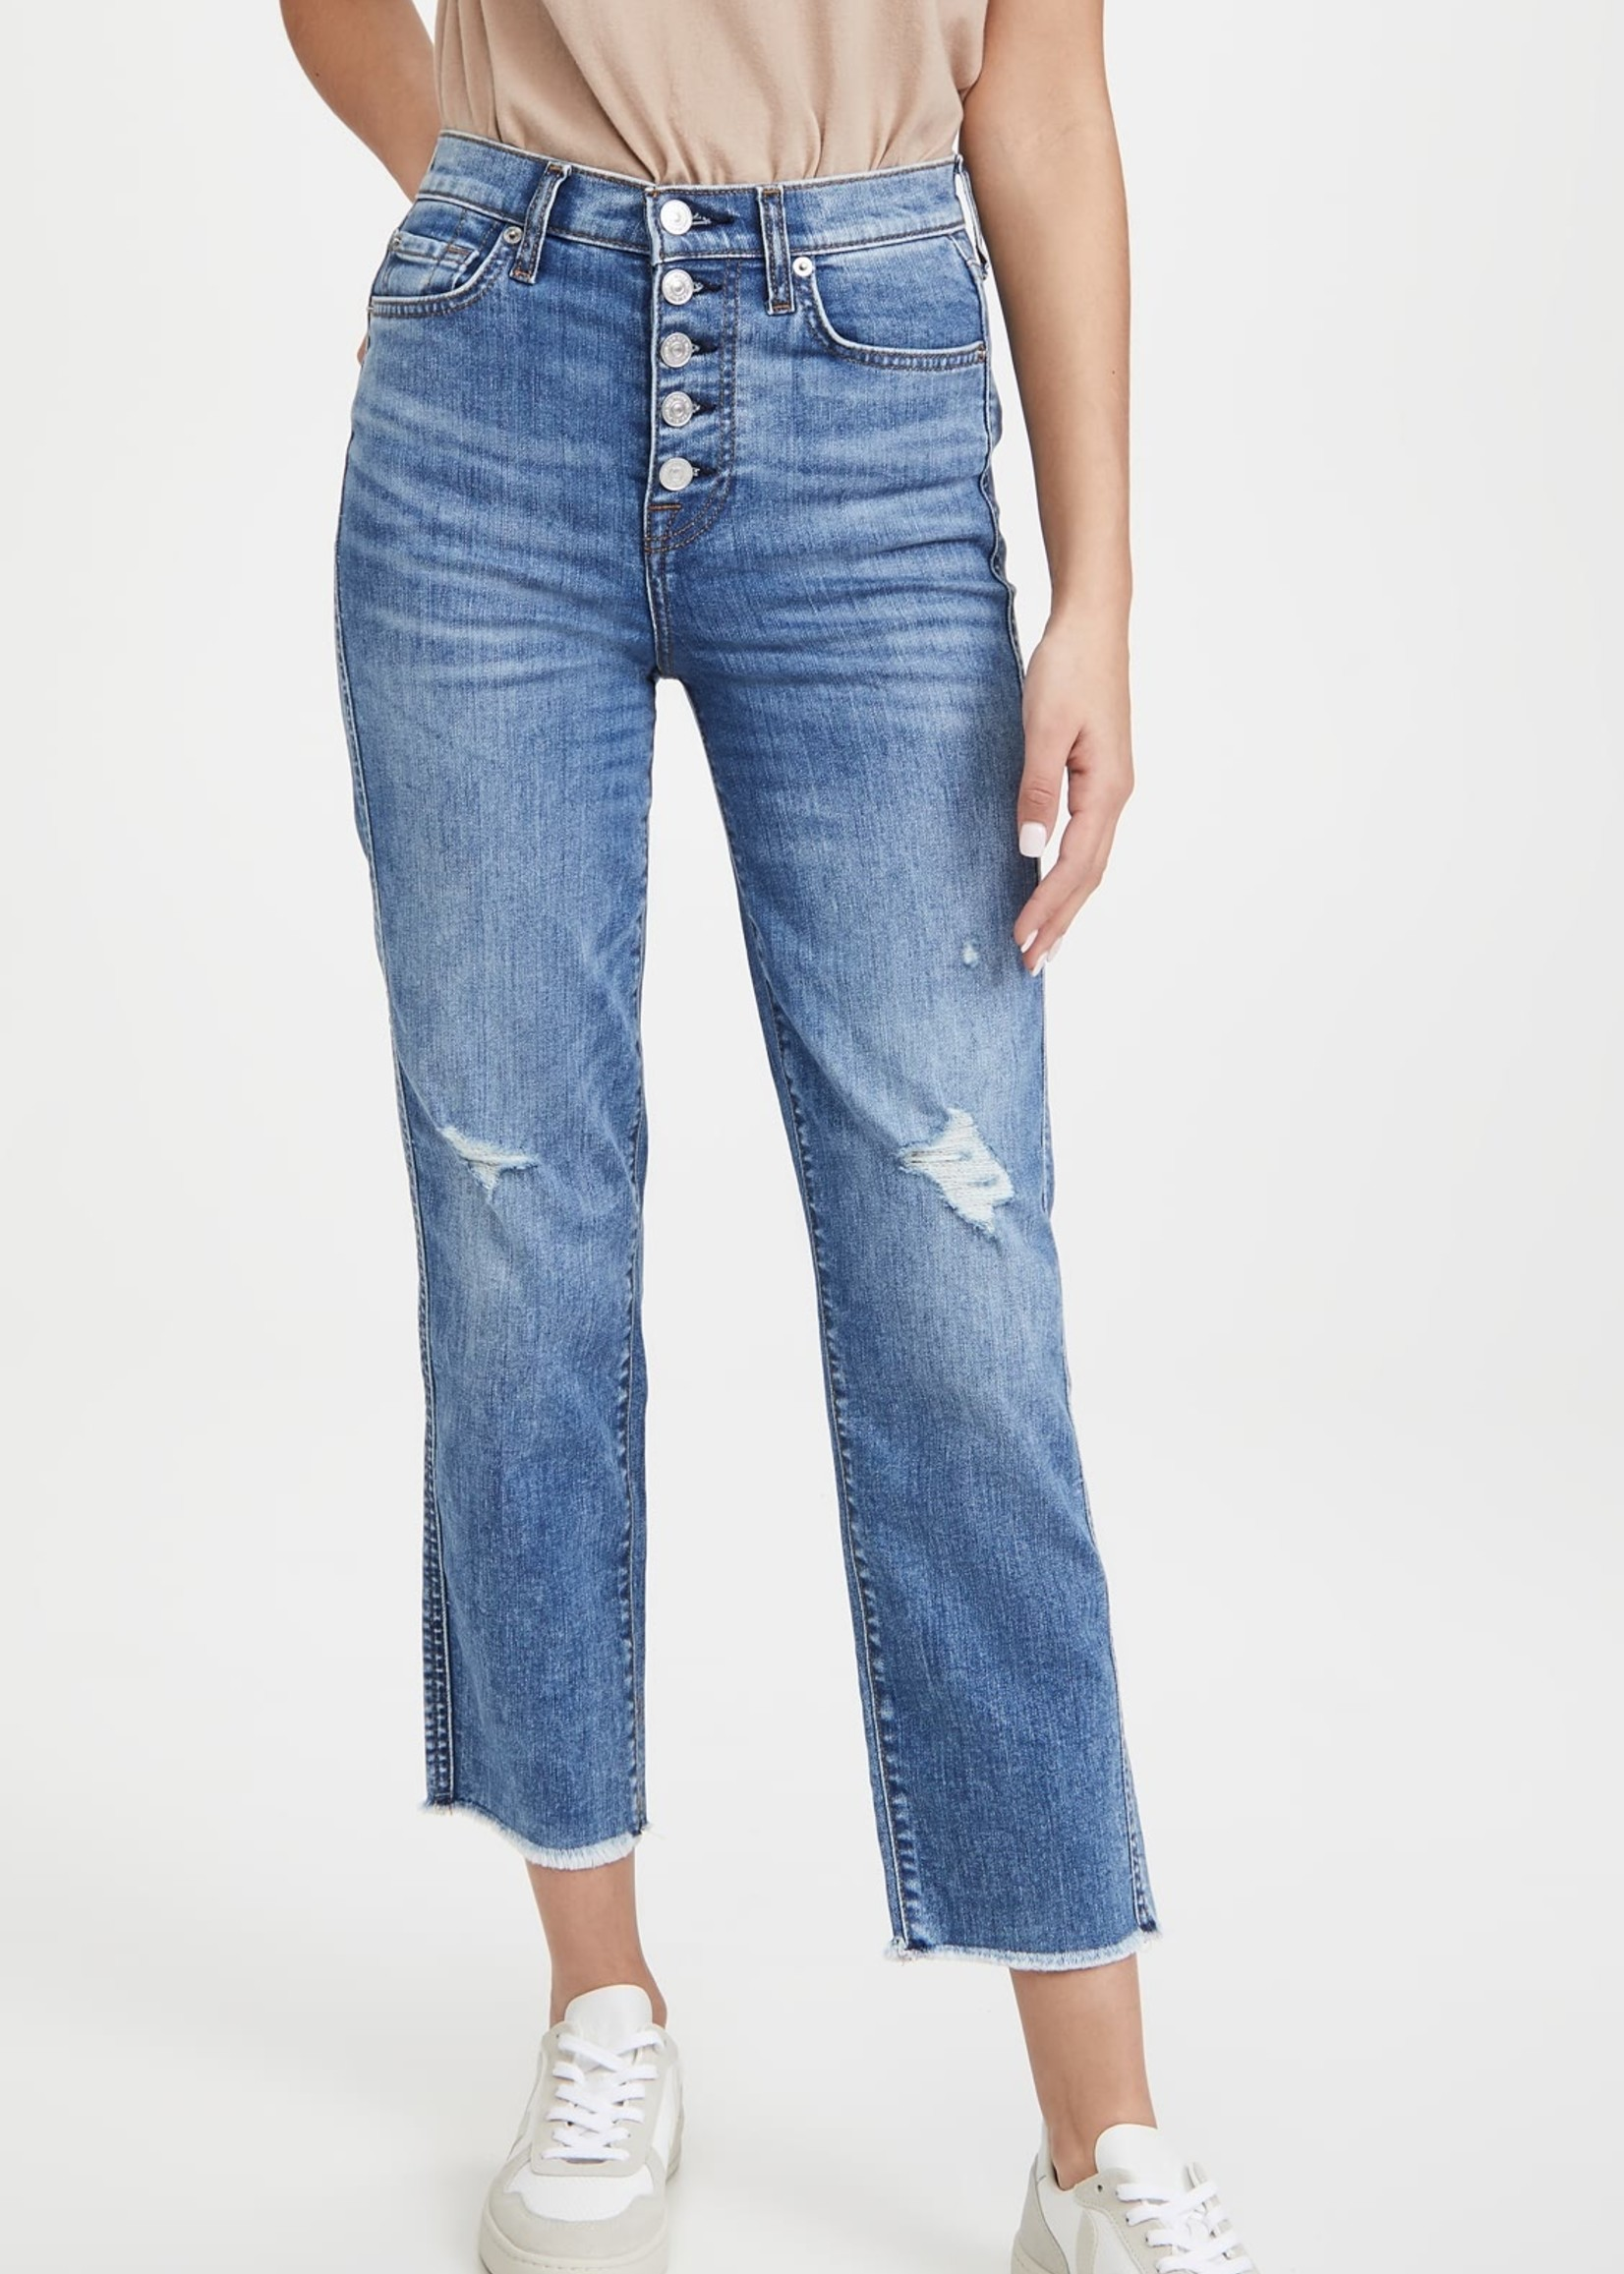 7 For All Mankind 7 For All Mankind Cropped Straight Leg Jeans